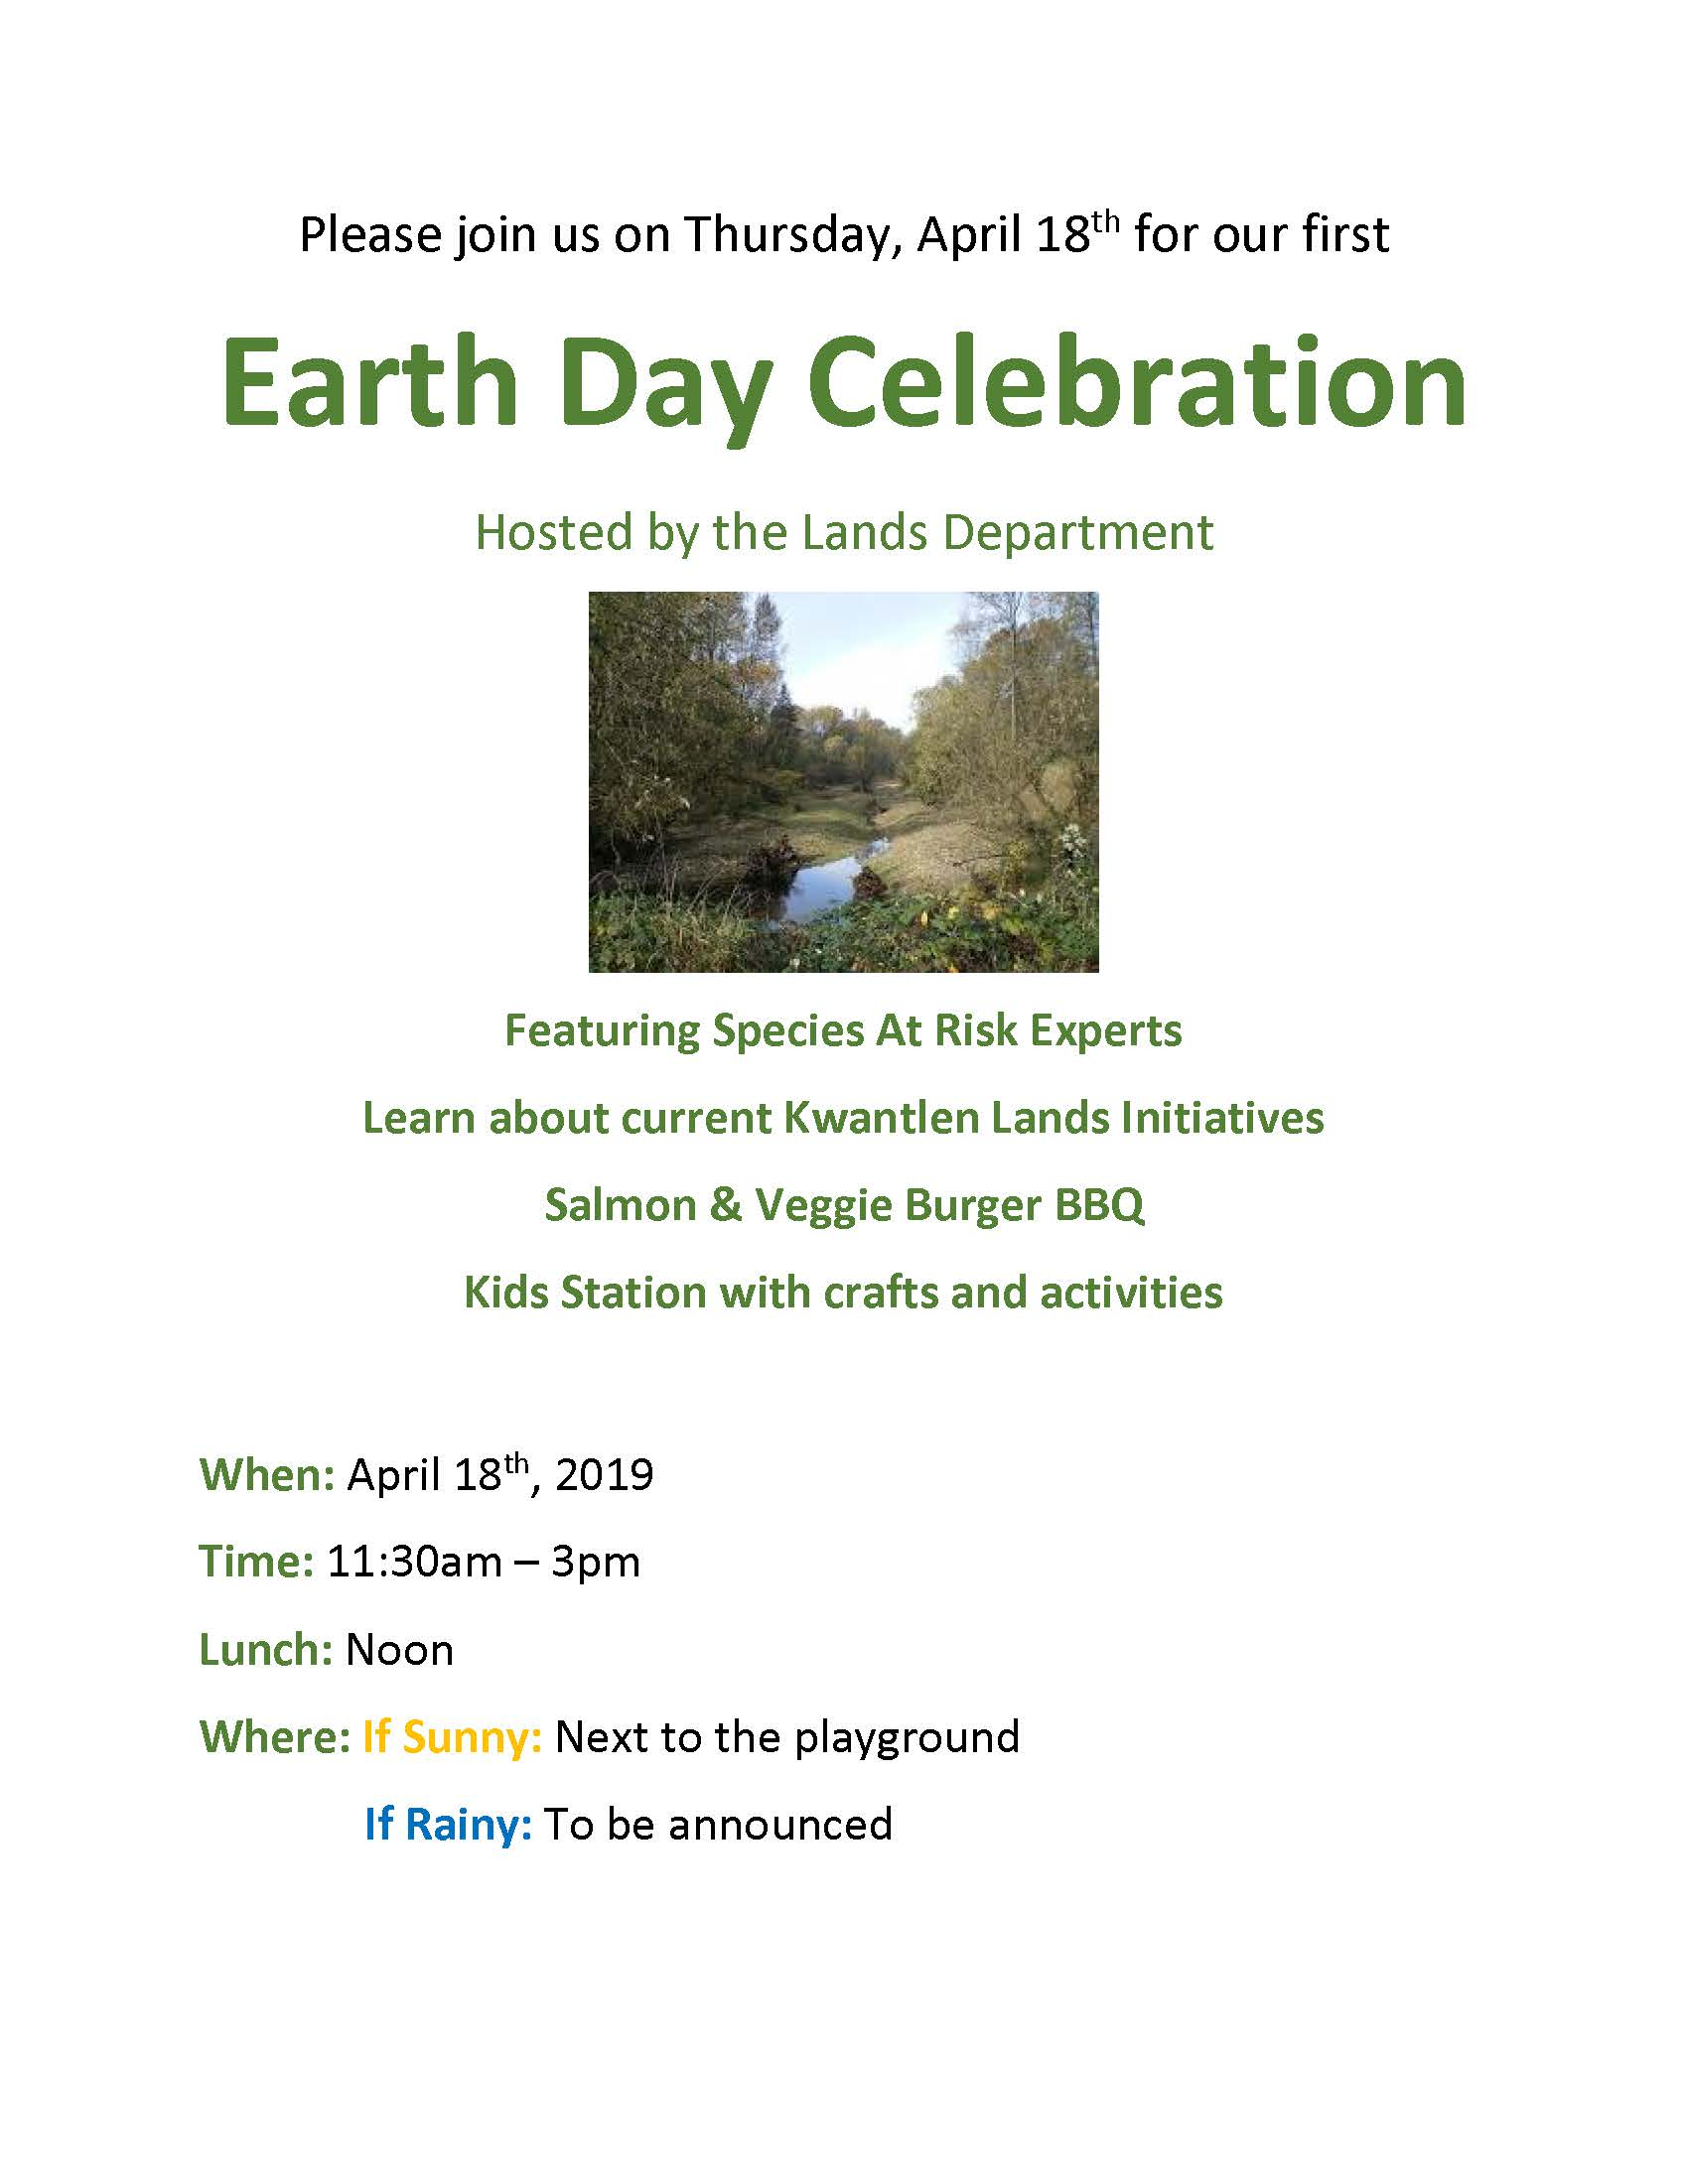 Earth Day Poster.jpg